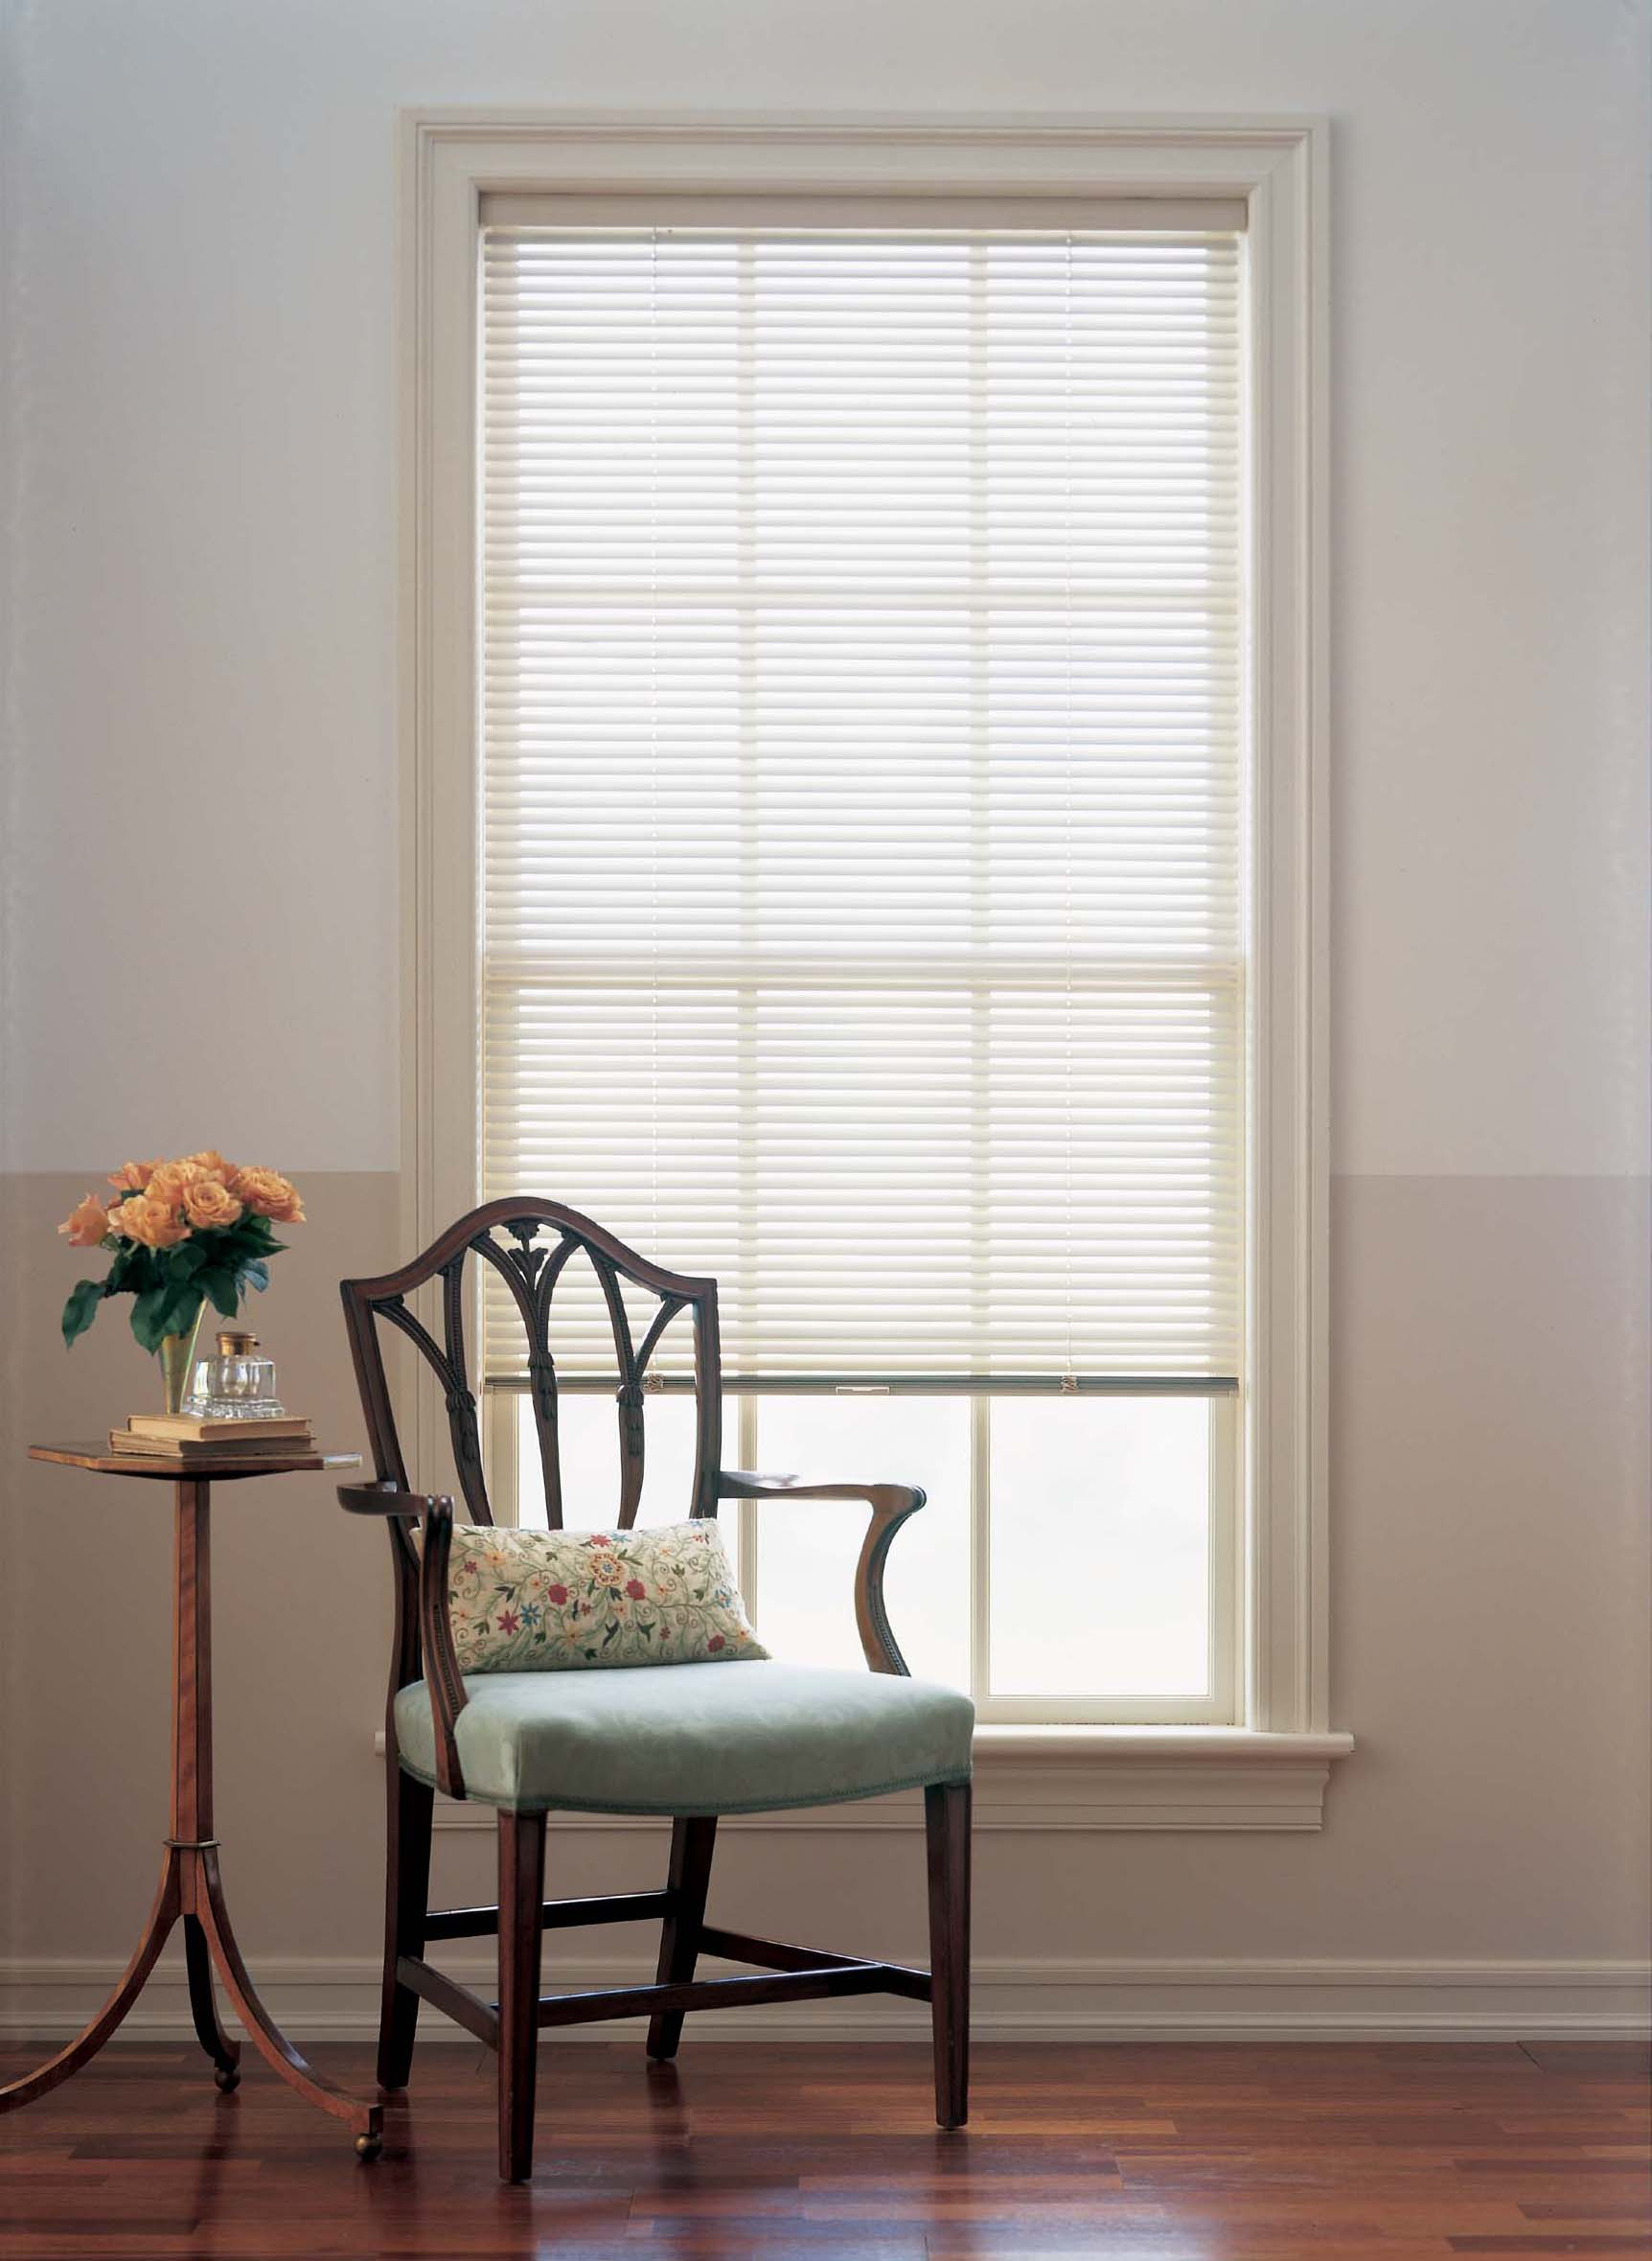 excellent vertical large for or choice micro an a windows payless doors rounded dust blinds and sliding index our options mini are valance include standard square glass llc horivert cover